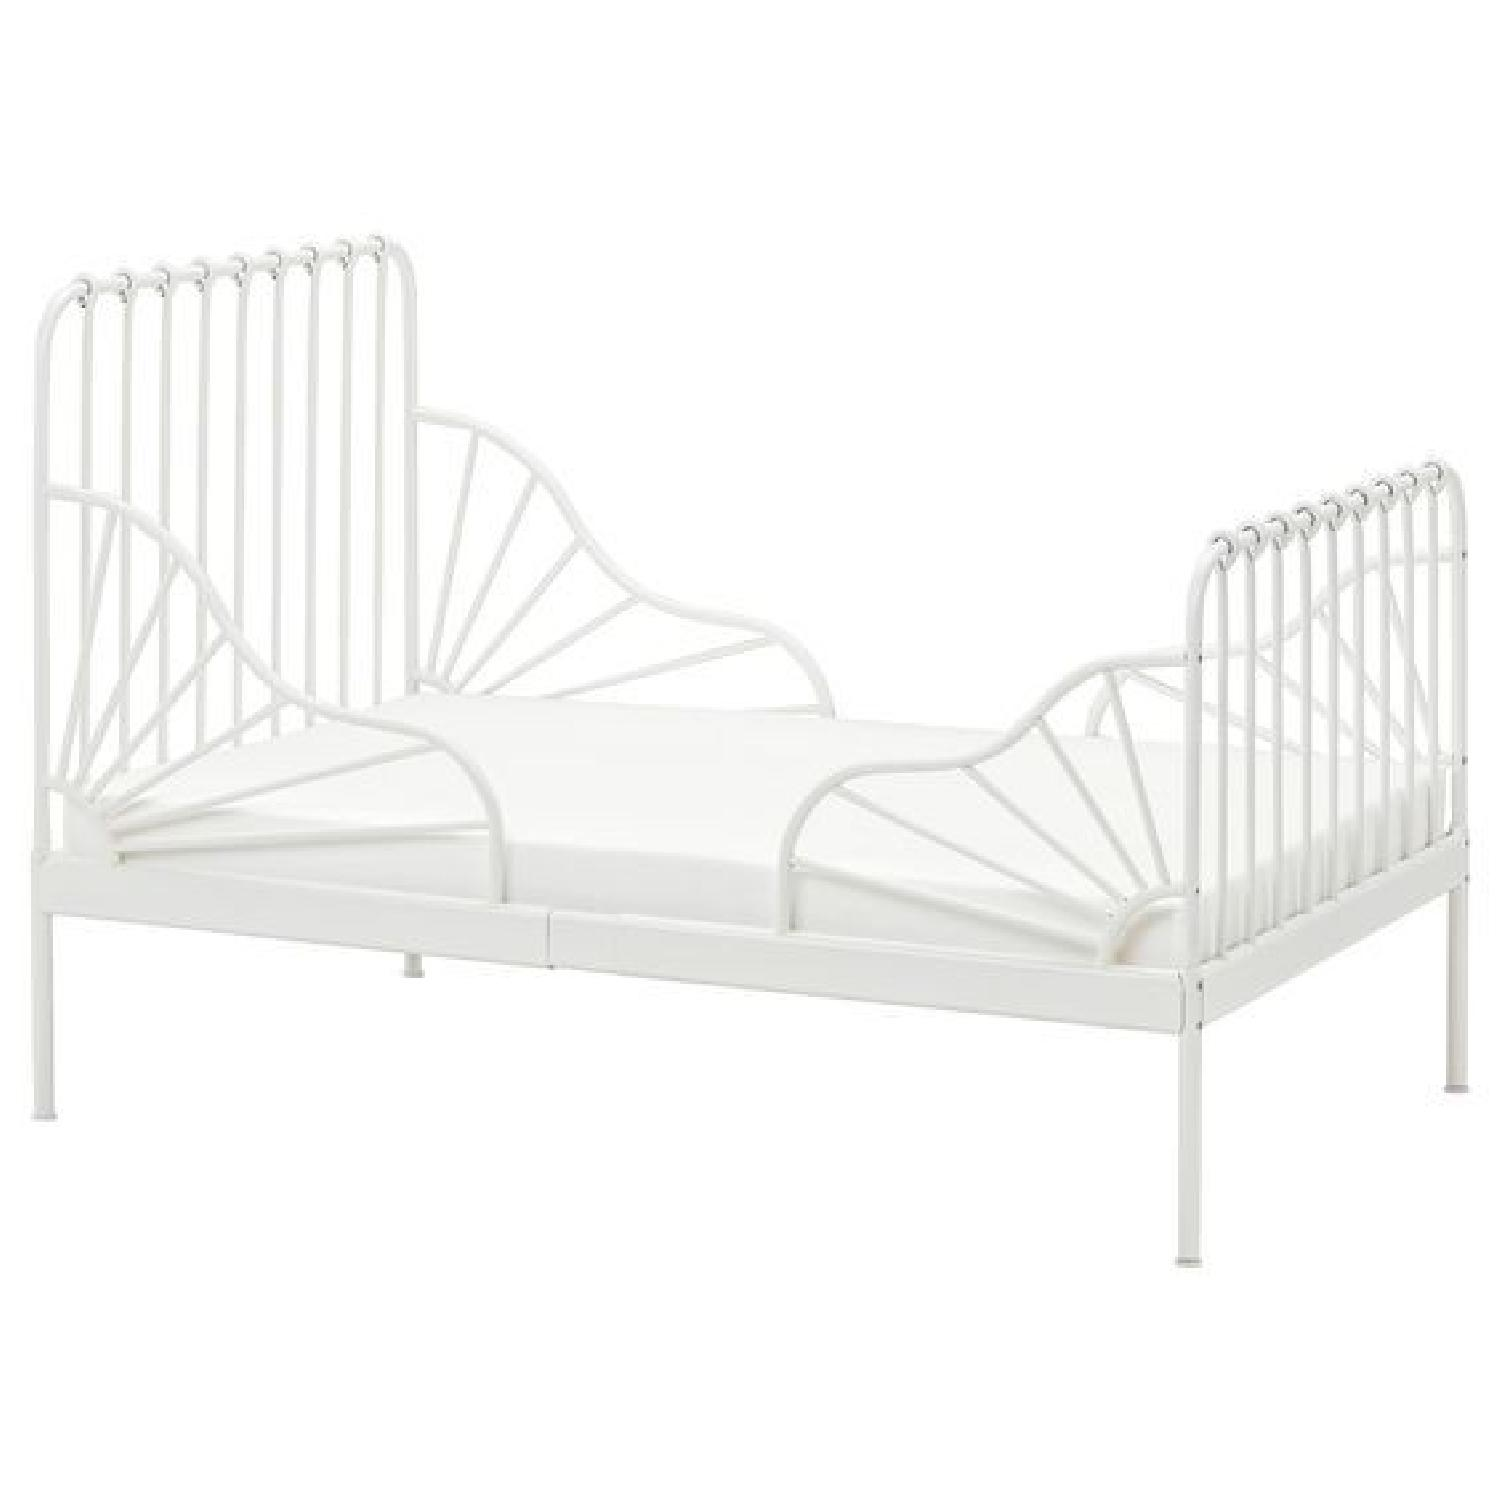 Ikea Minnen White Expandable Bed w/ Slatted Bed Base-2